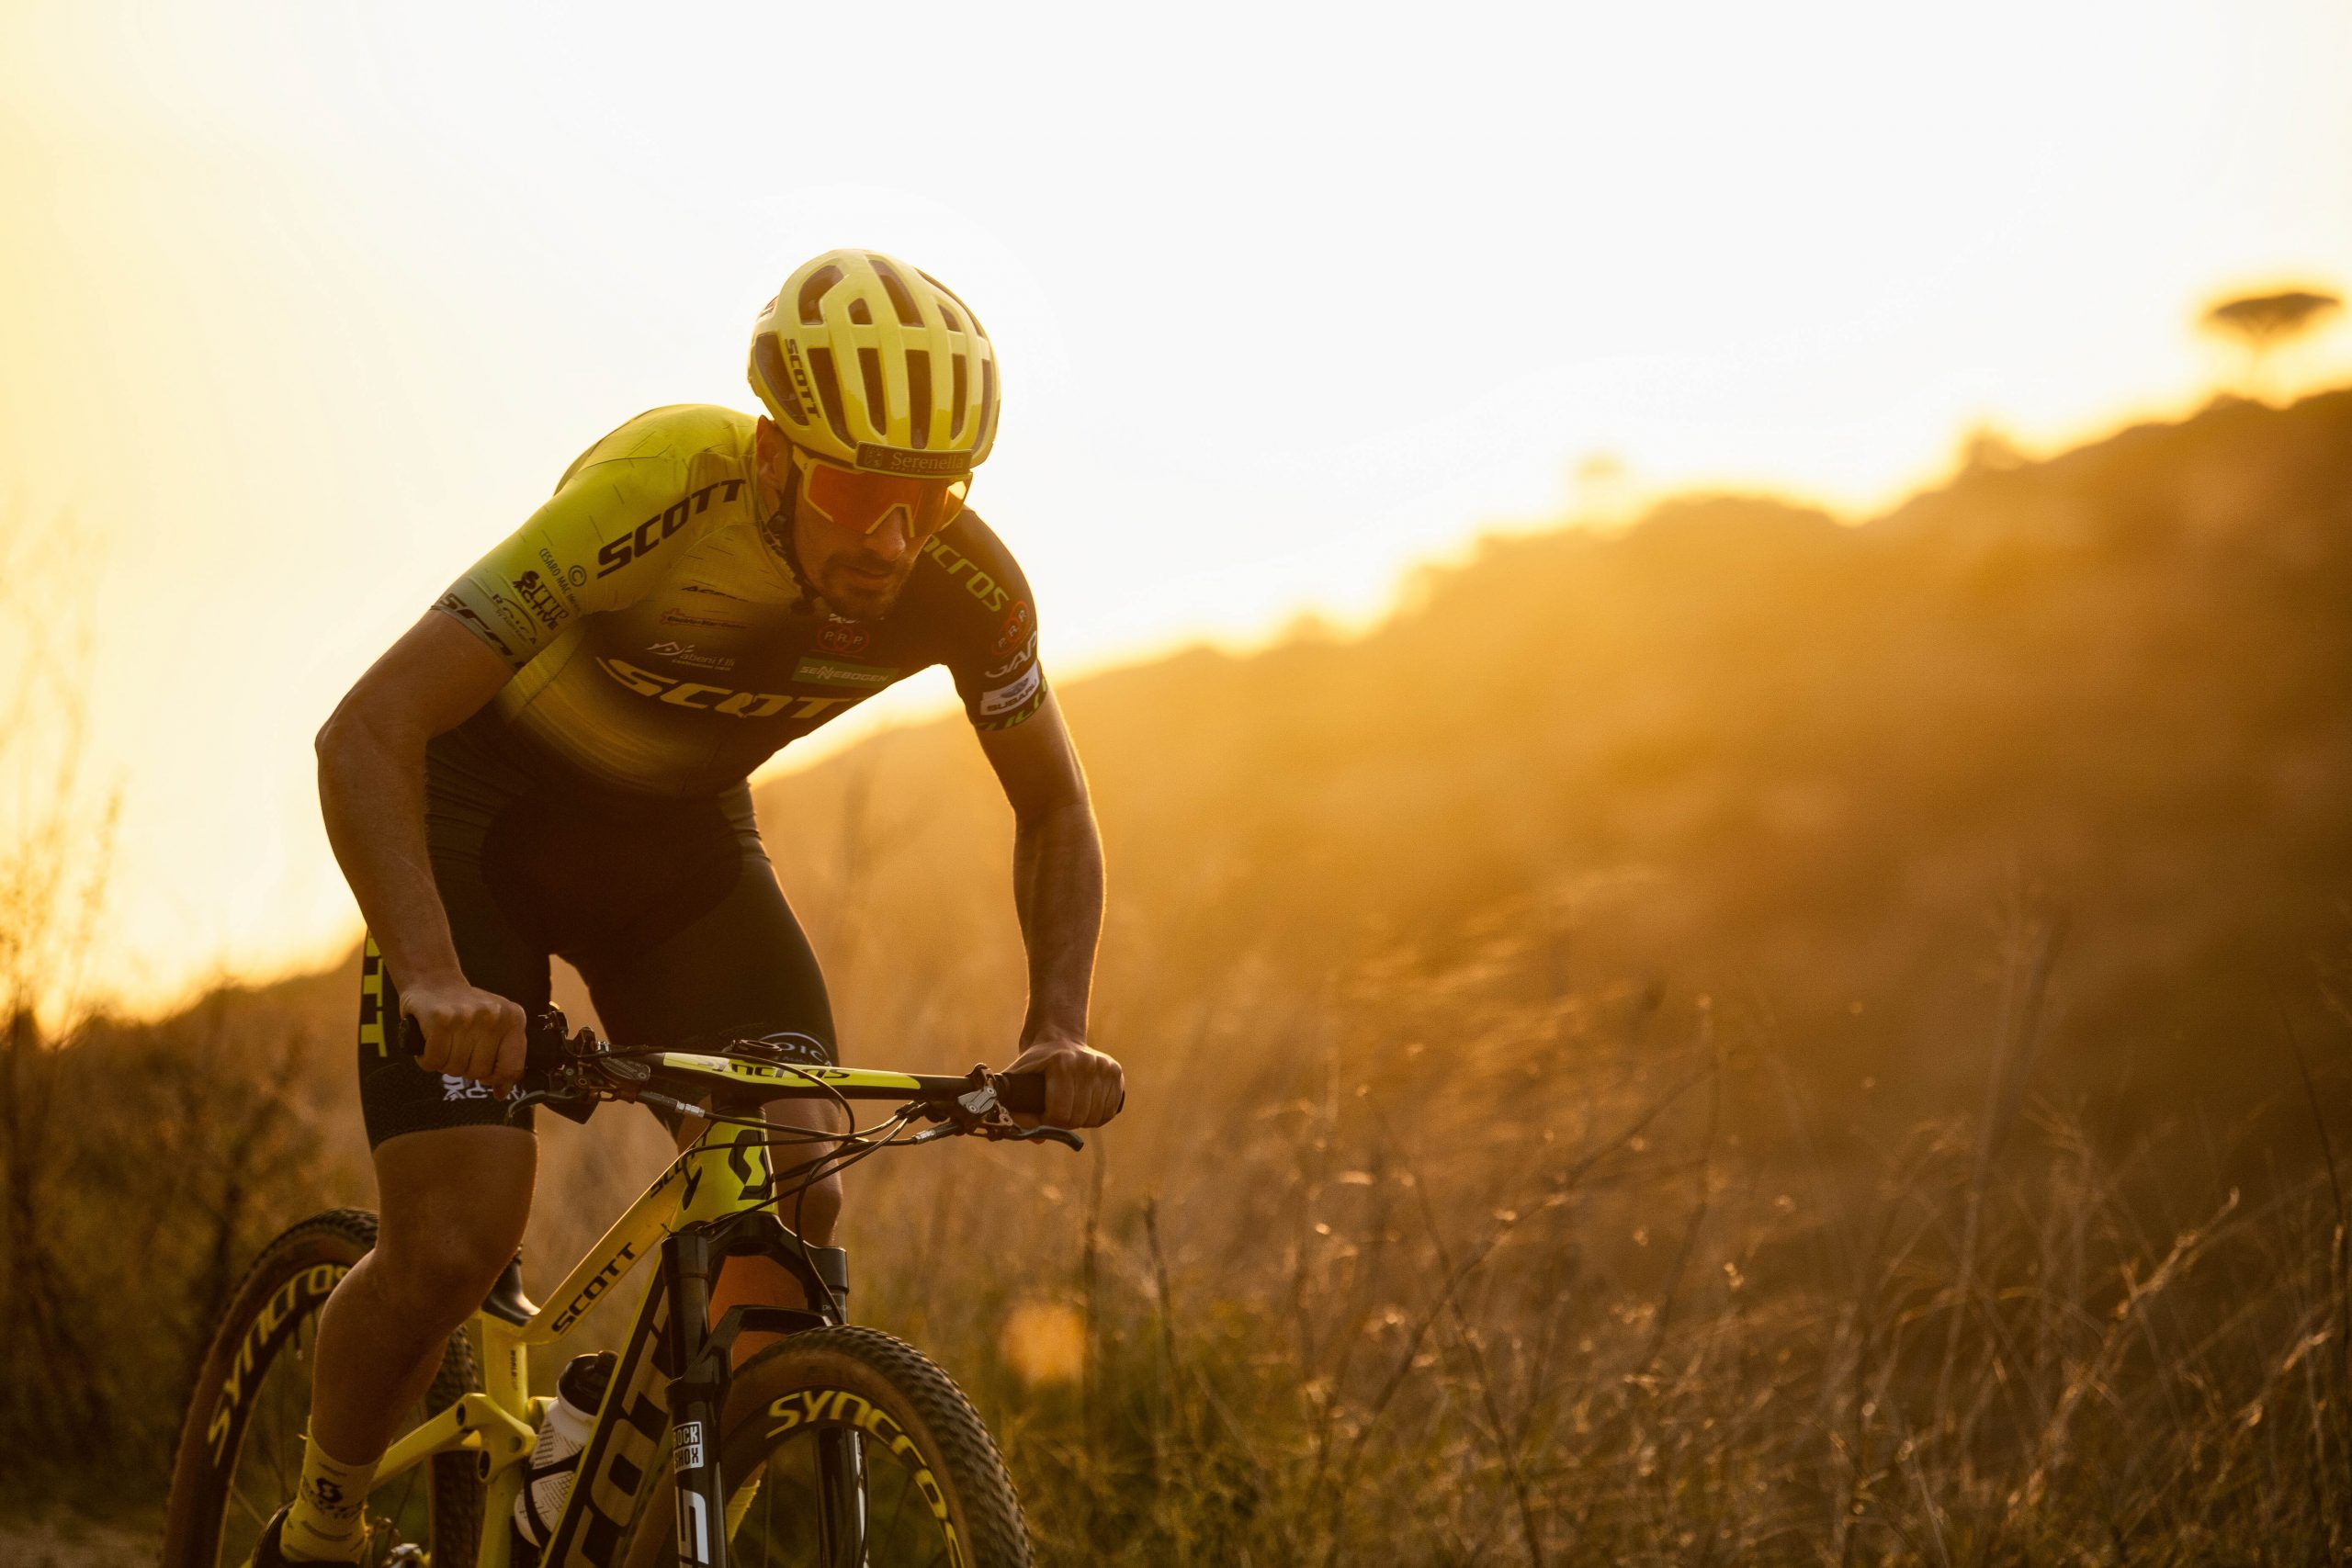 The first SCOTT Racing Team sustainable biking uniform, in partnership with Sitip, Rosti and ROICA™